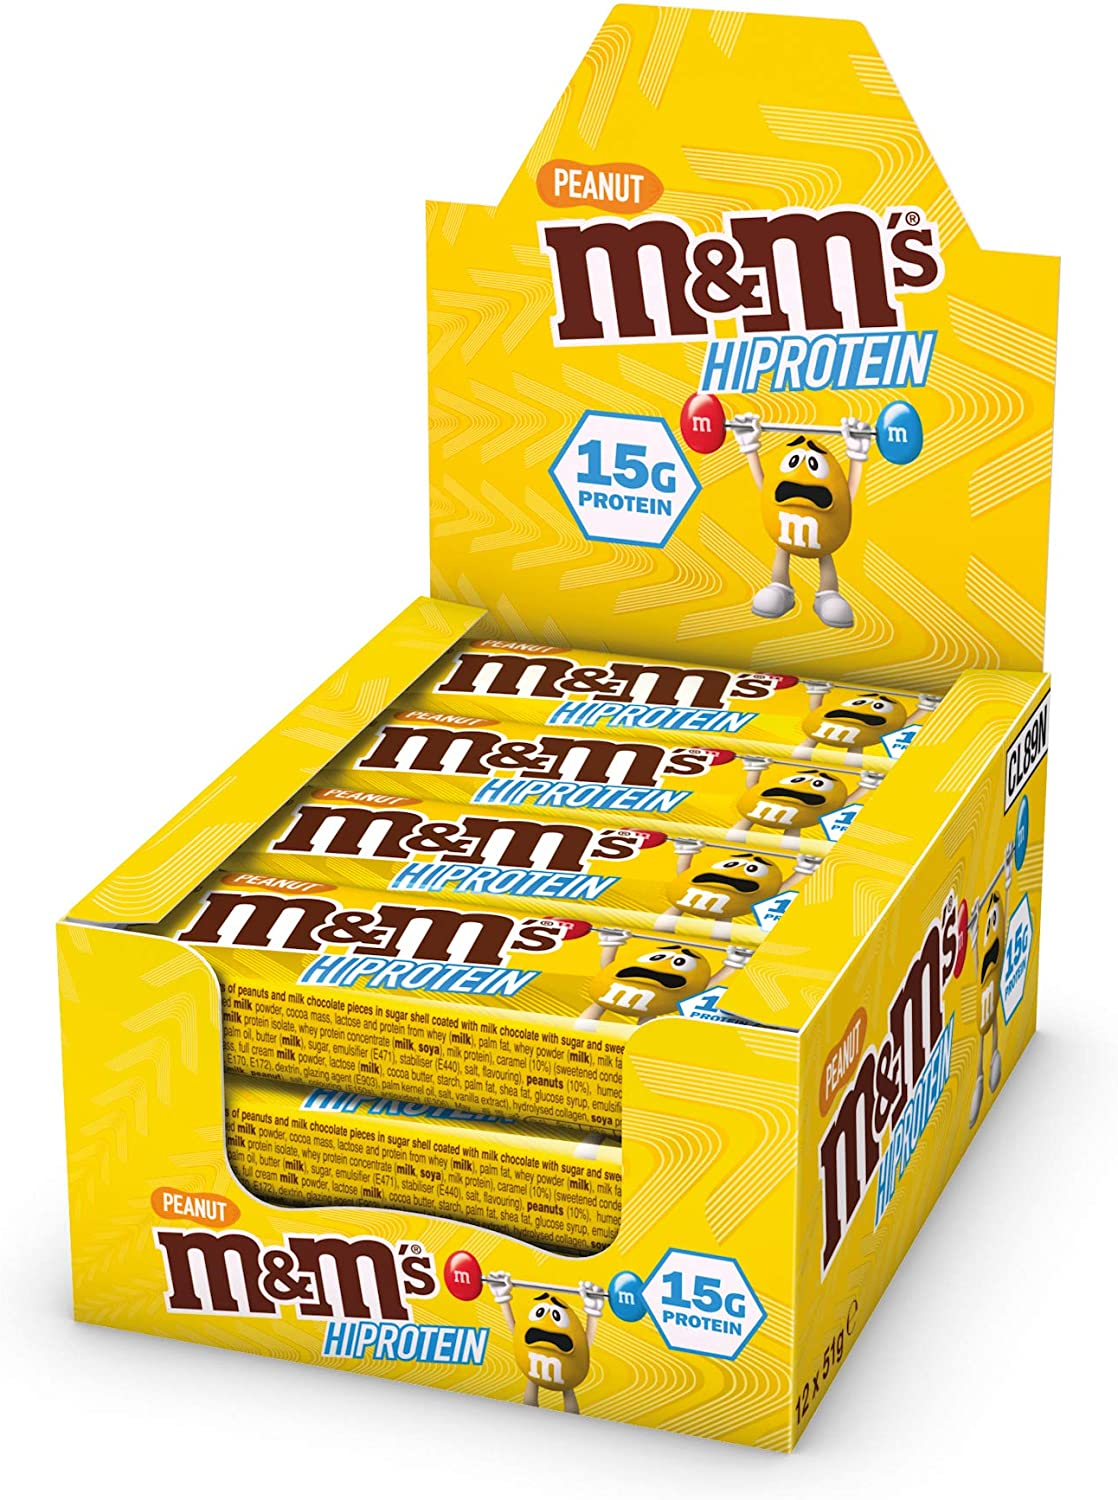 M&M's Hi Protein Peanut Bar (12 x 51g) - High Protein Snack with M&M's, Peanuts, Caramel and Milk Chocolate - Contains 15g Protein: Amazon.co.uk: Health & Personal Care